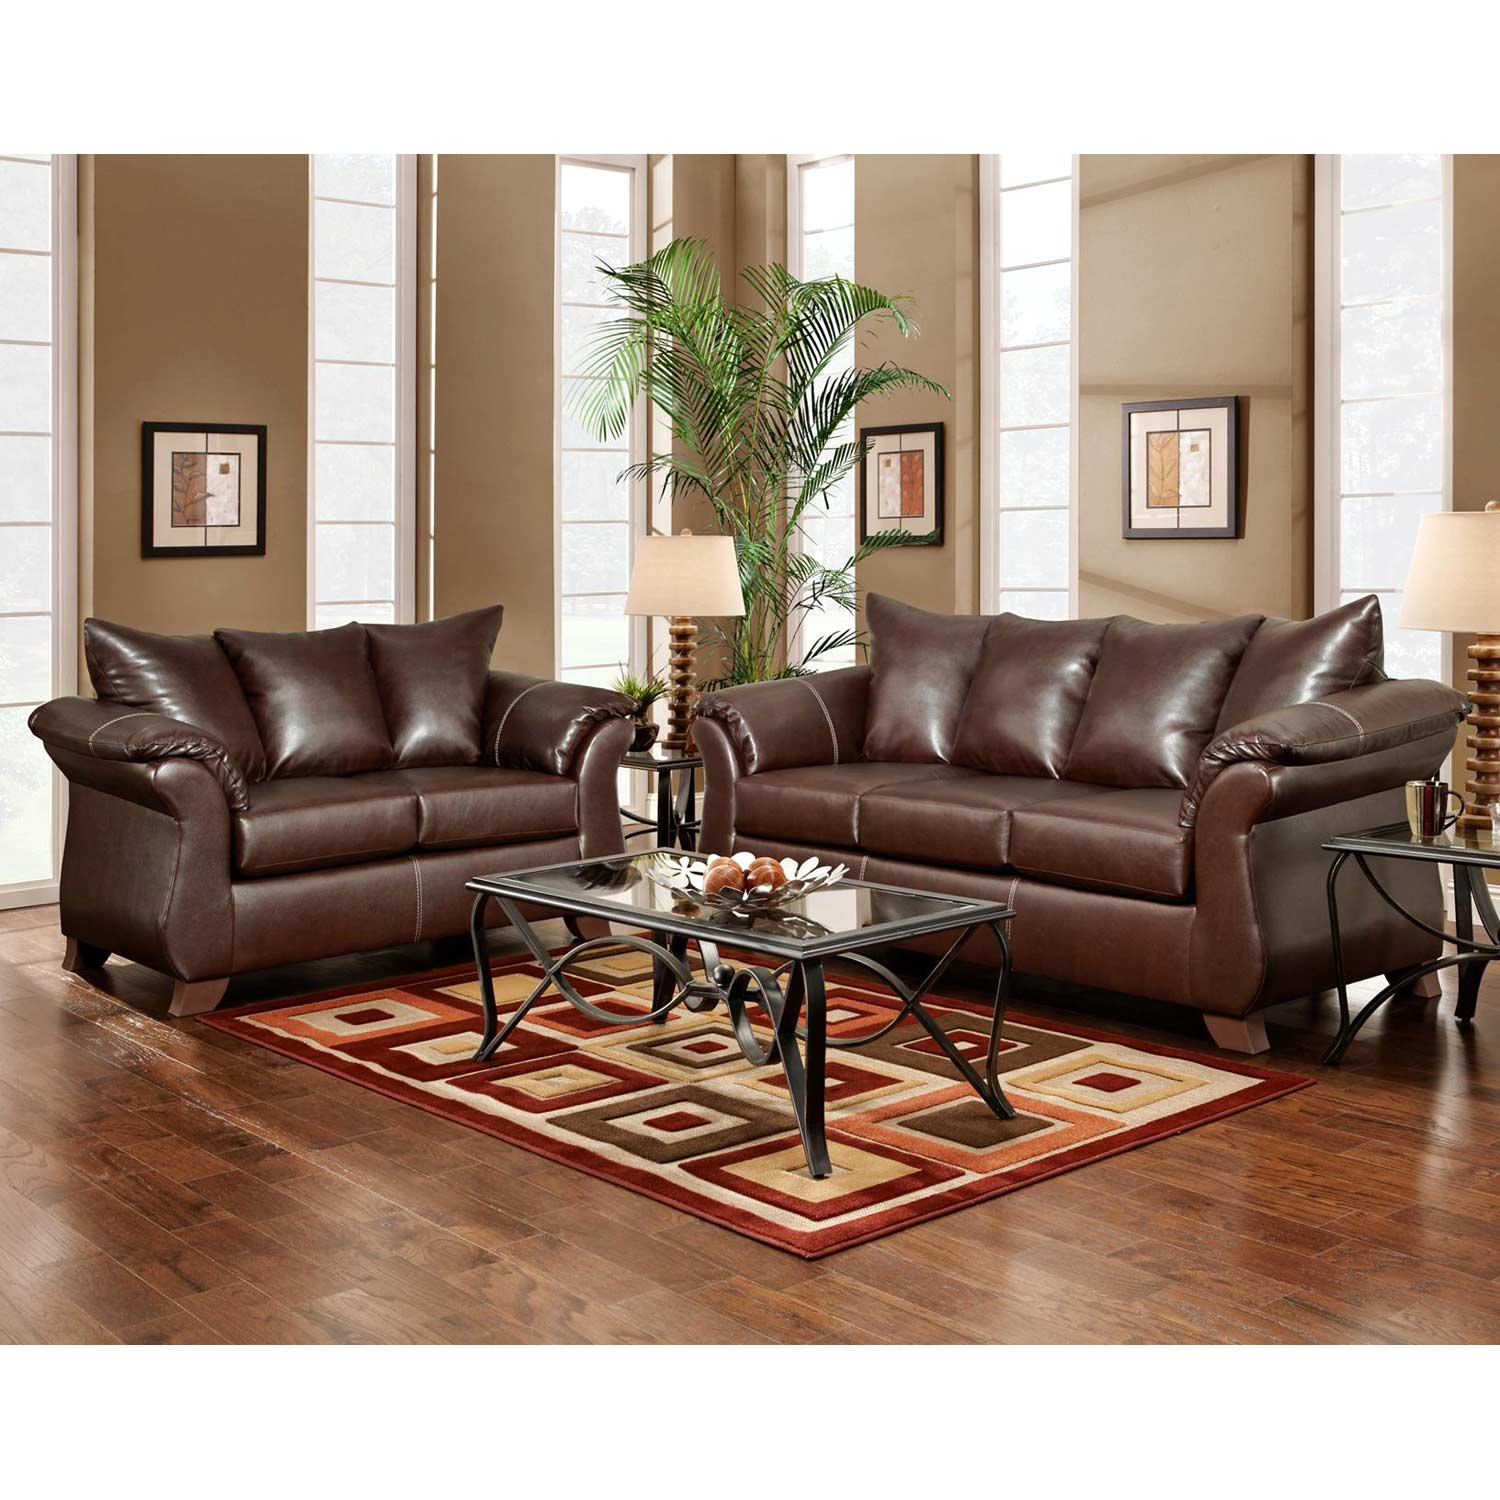 Payton Pillow Back Loveseat - Taos Mahogany Leather - CHF-6702-TM